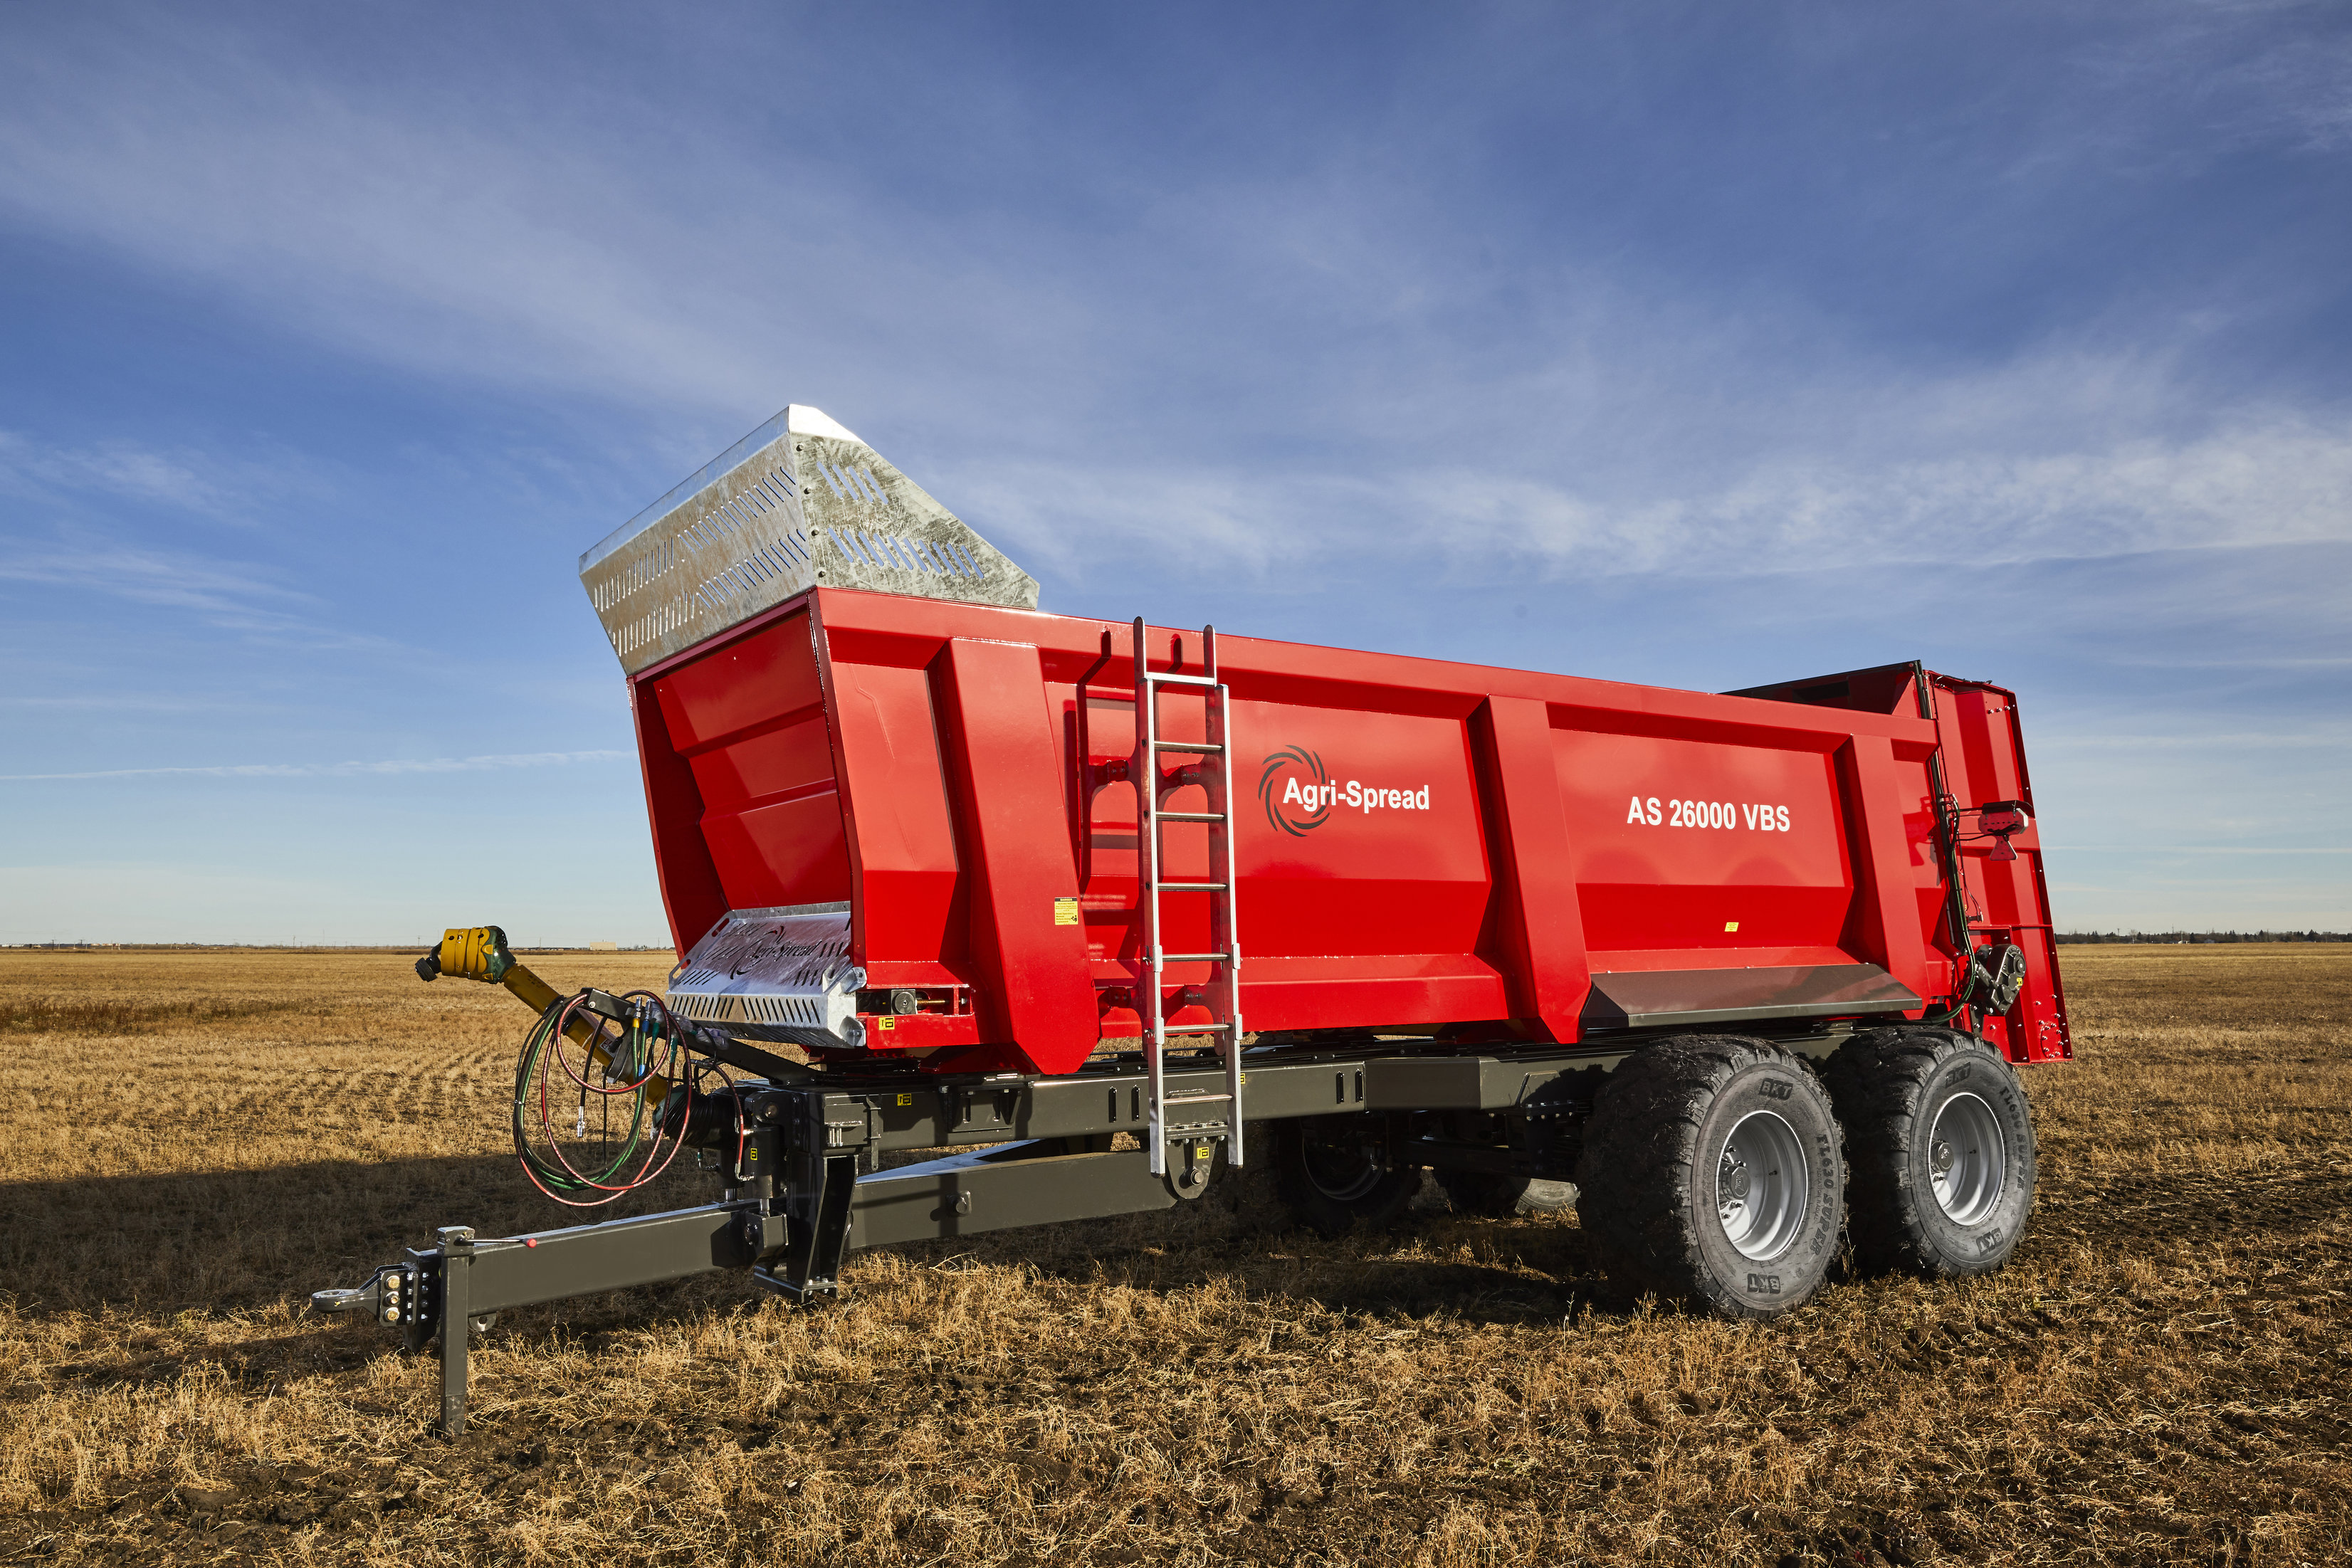 Agrispread brings technology to farm machinery